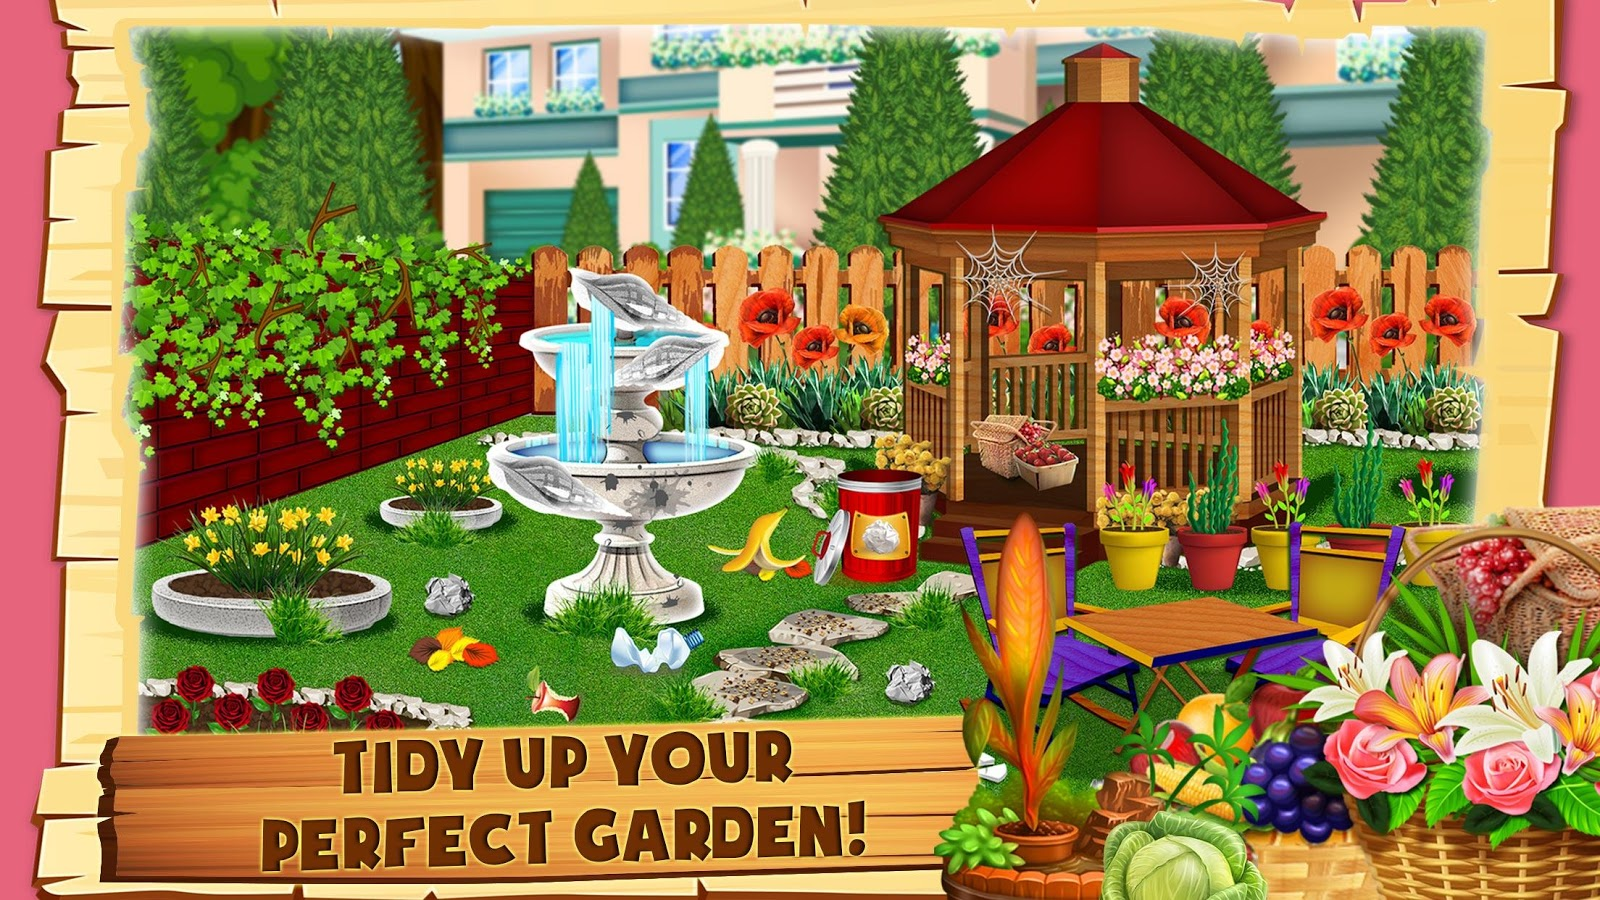 Garden Design Games Collection Entrancing Garden Design Games  Flower Decoration  Android Apps On Google Play Inspiration